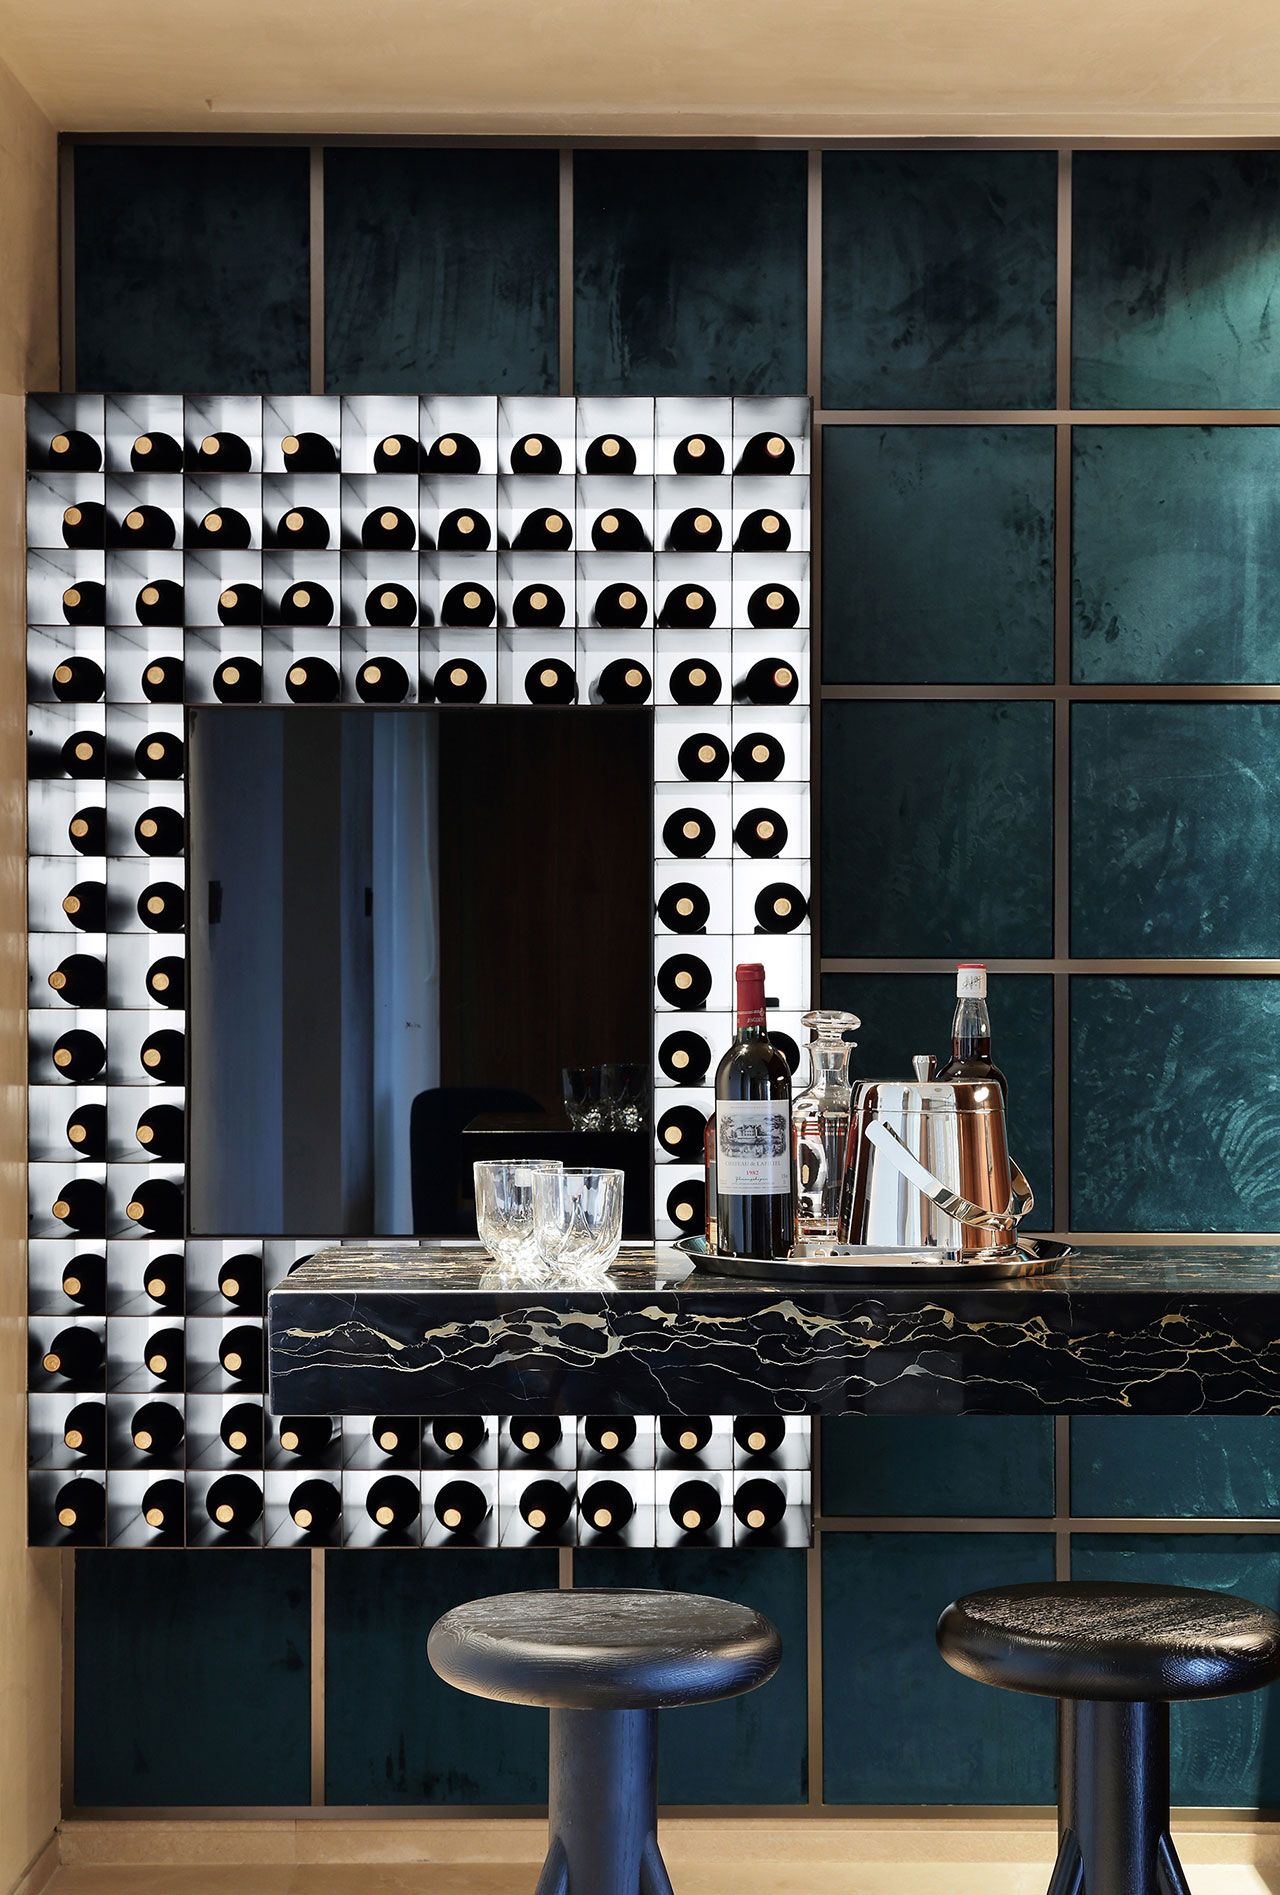 Western Design and Eastern Lifestyle Interplay in a Family Apartment in  China. Bar LoungeContemporary Interior ...